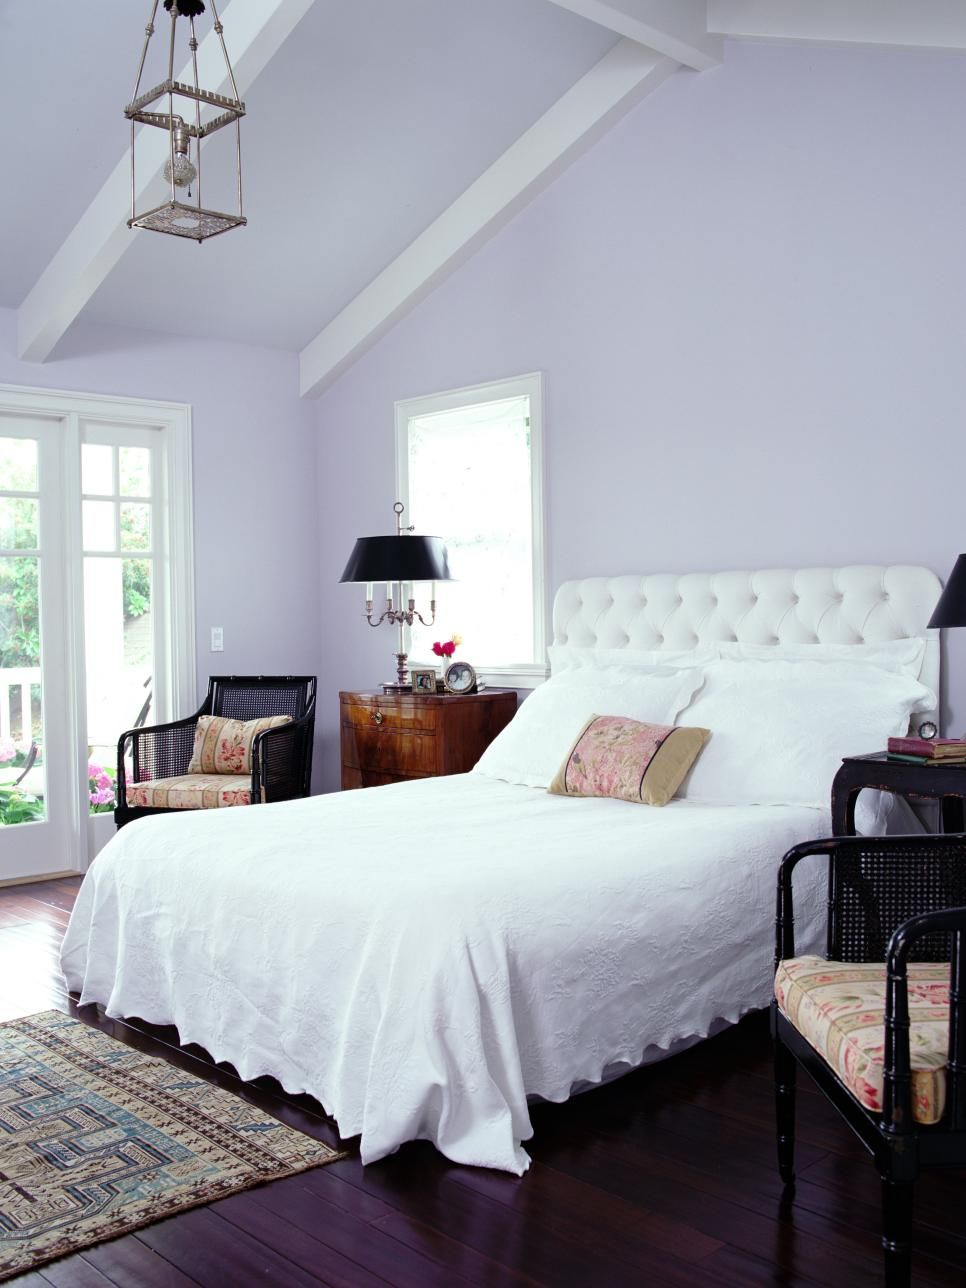 10 Bedrooms To Inspire You To Go Lavender Interior Design